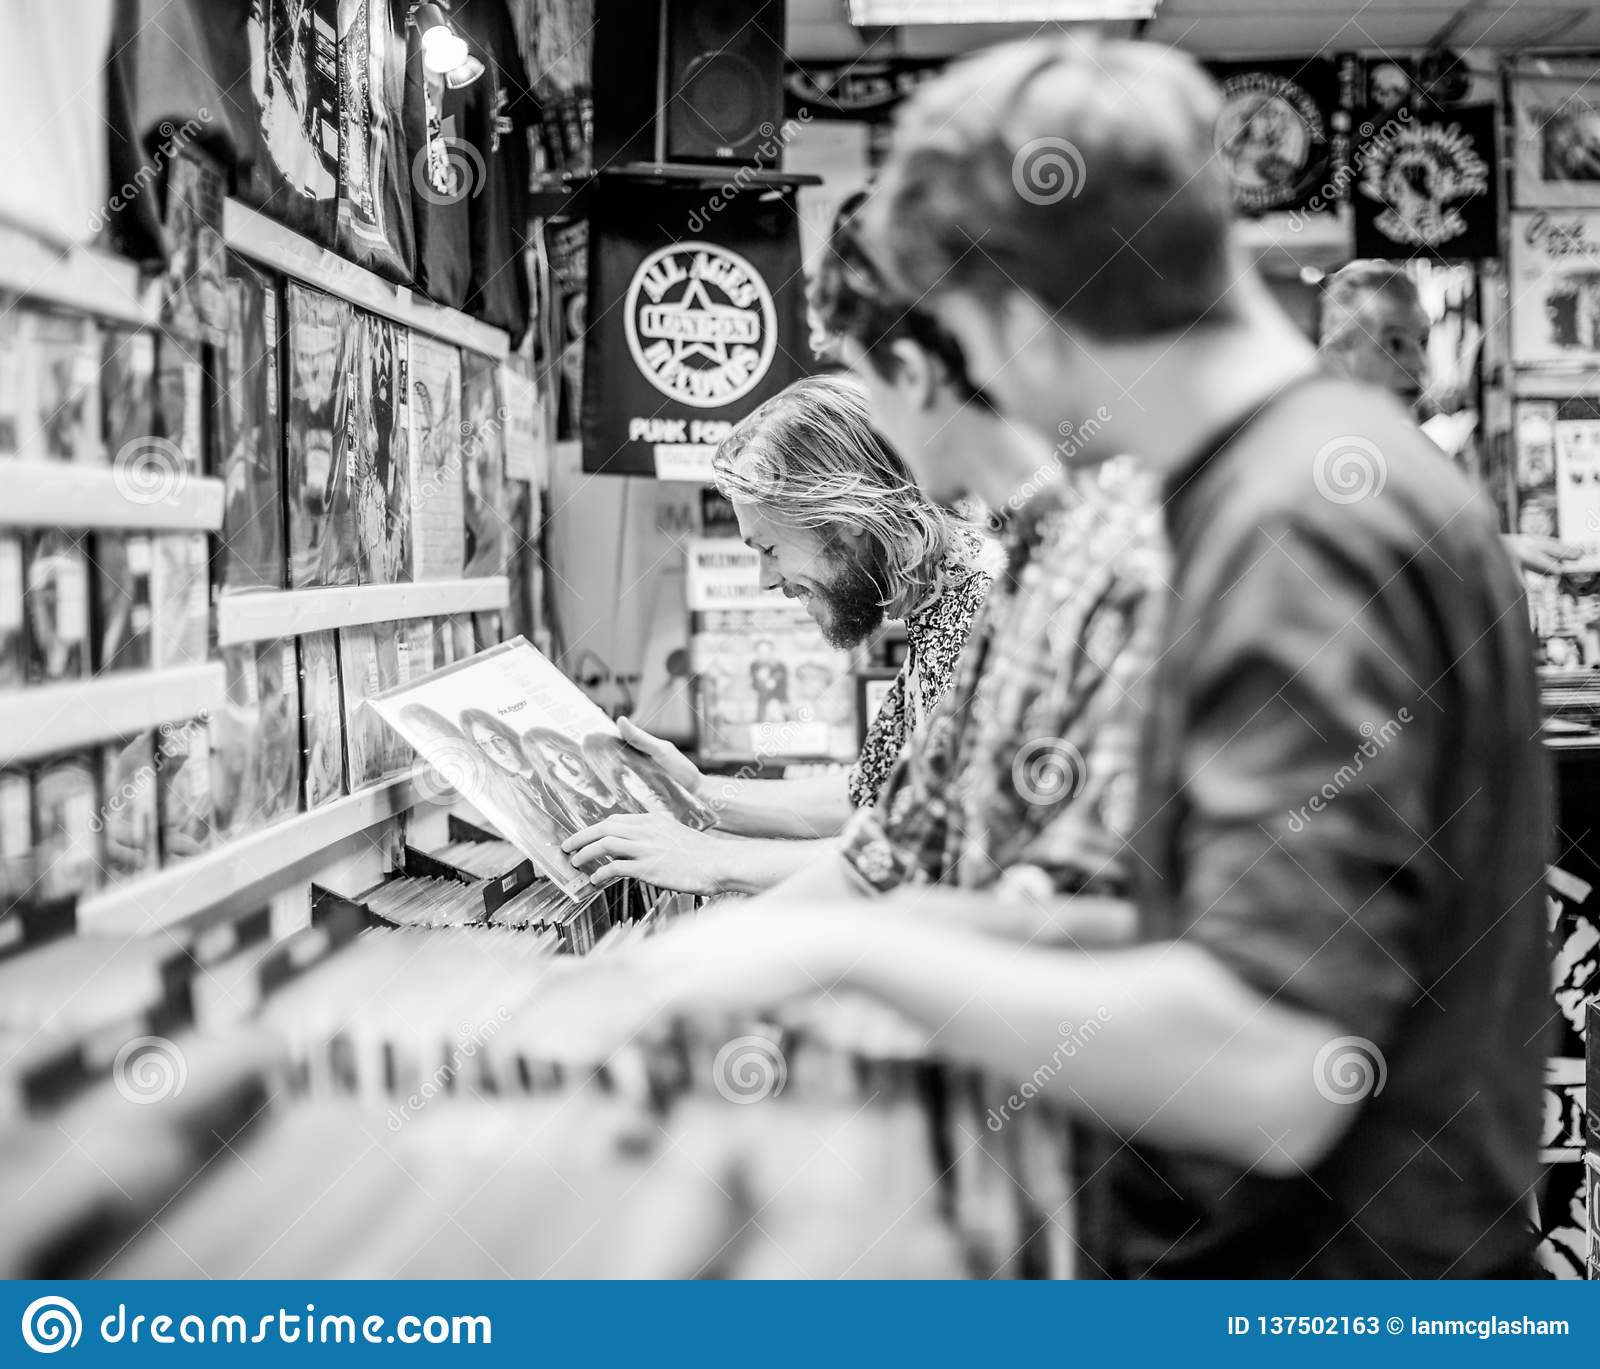 Young men looking at vinyl records in a store or shop.